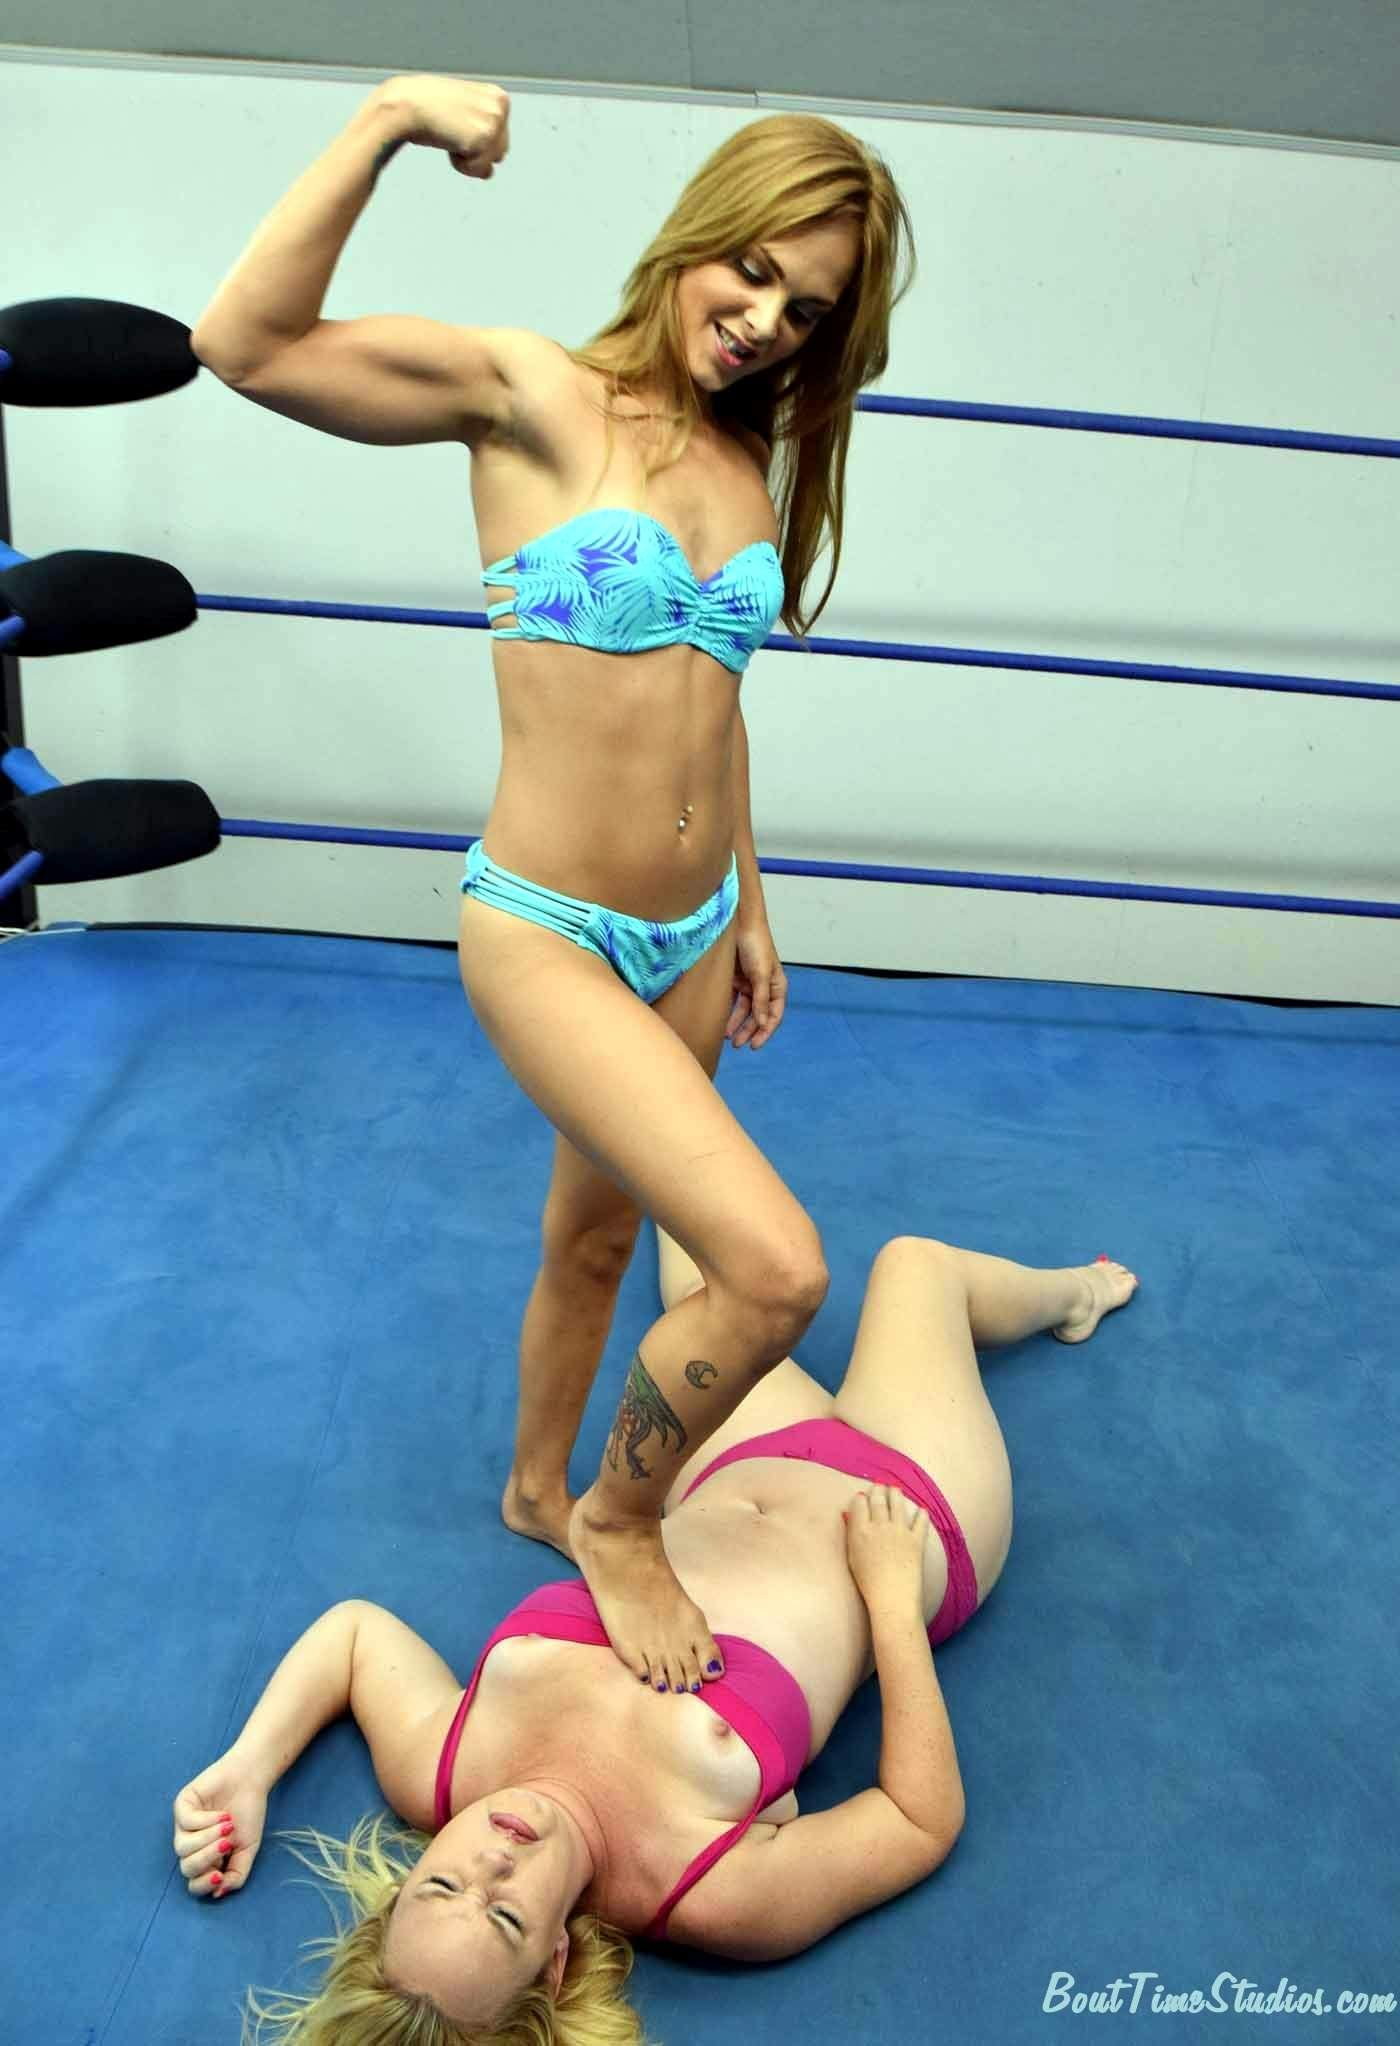 Pin By Blueberryshoe On Female Wrestling  Victory Pose -5251